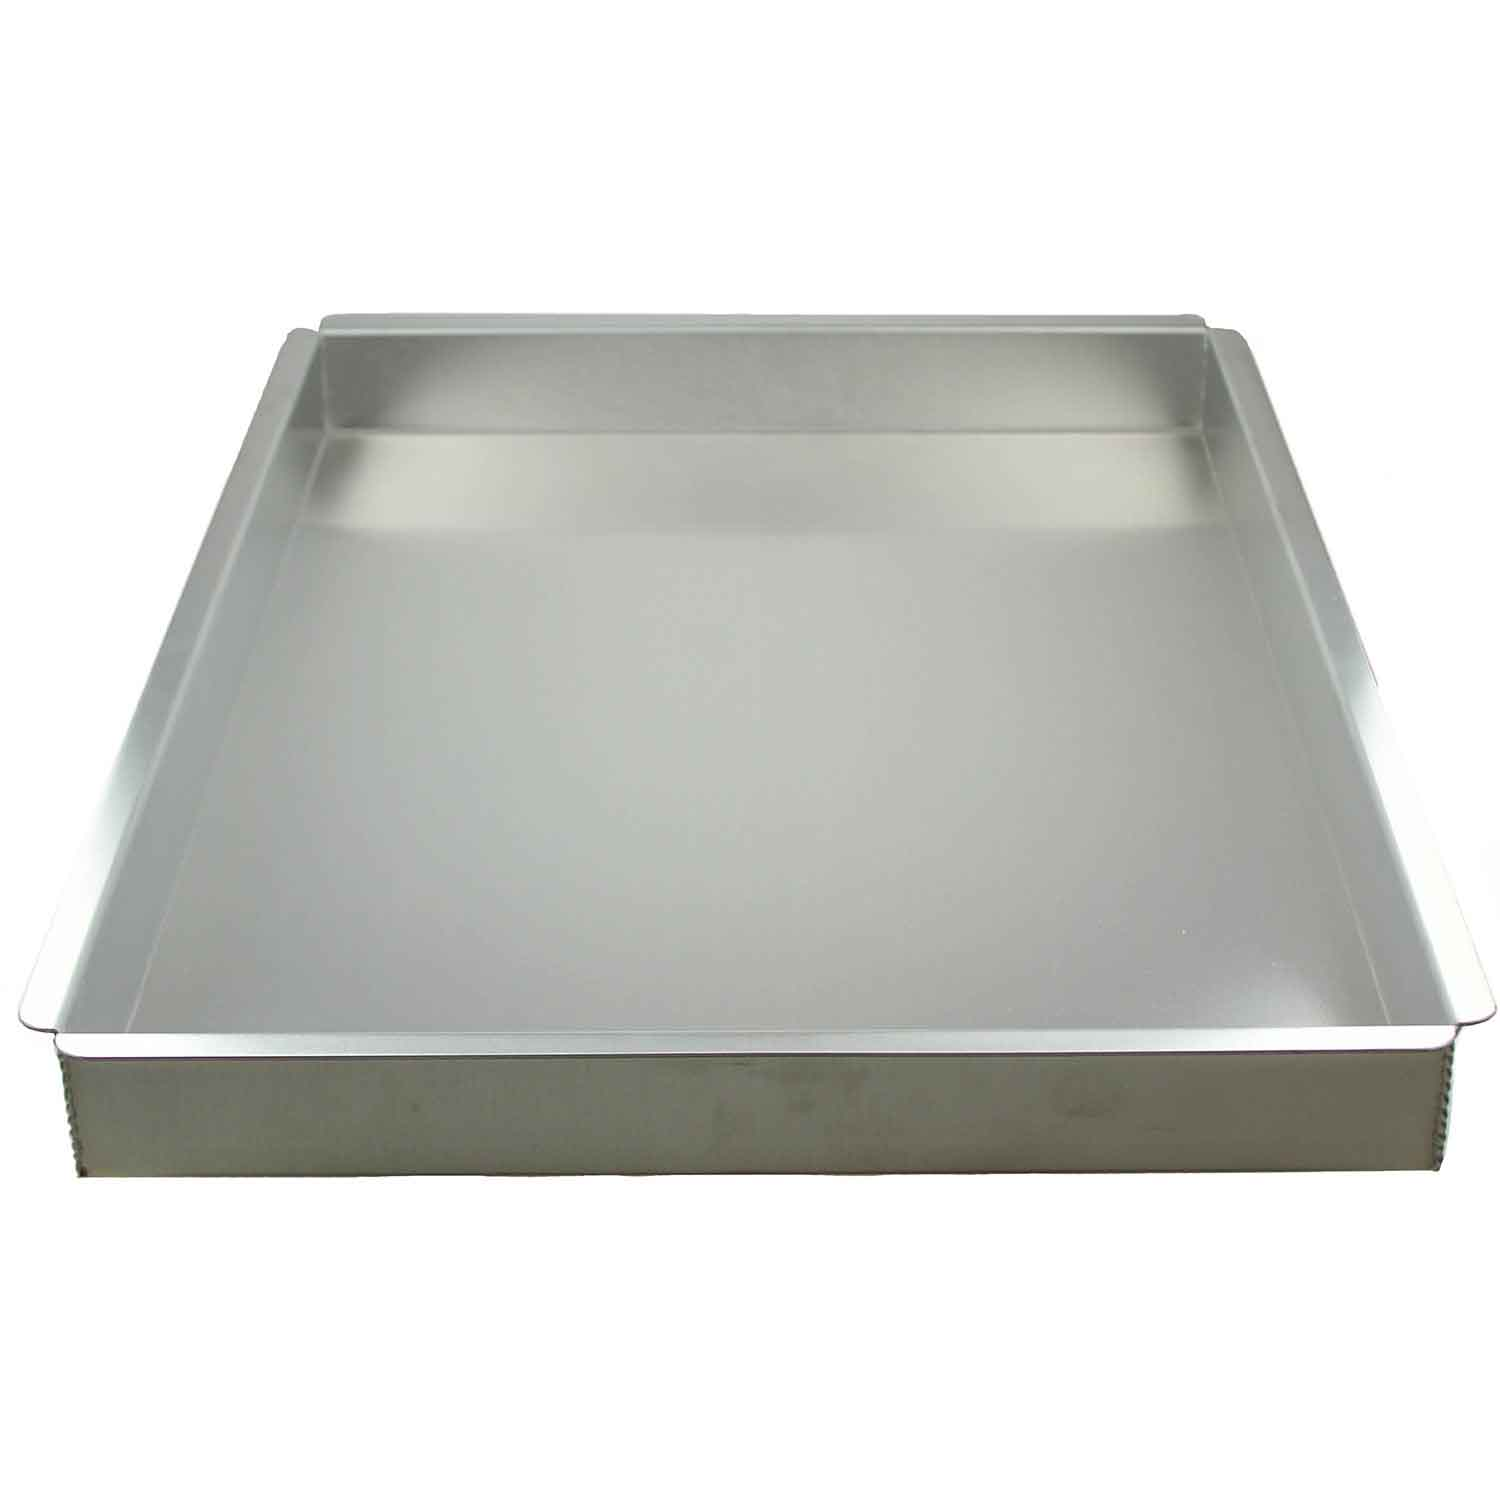 "16 X 24 x 2"" Magic Line Sheet Cake Pan"